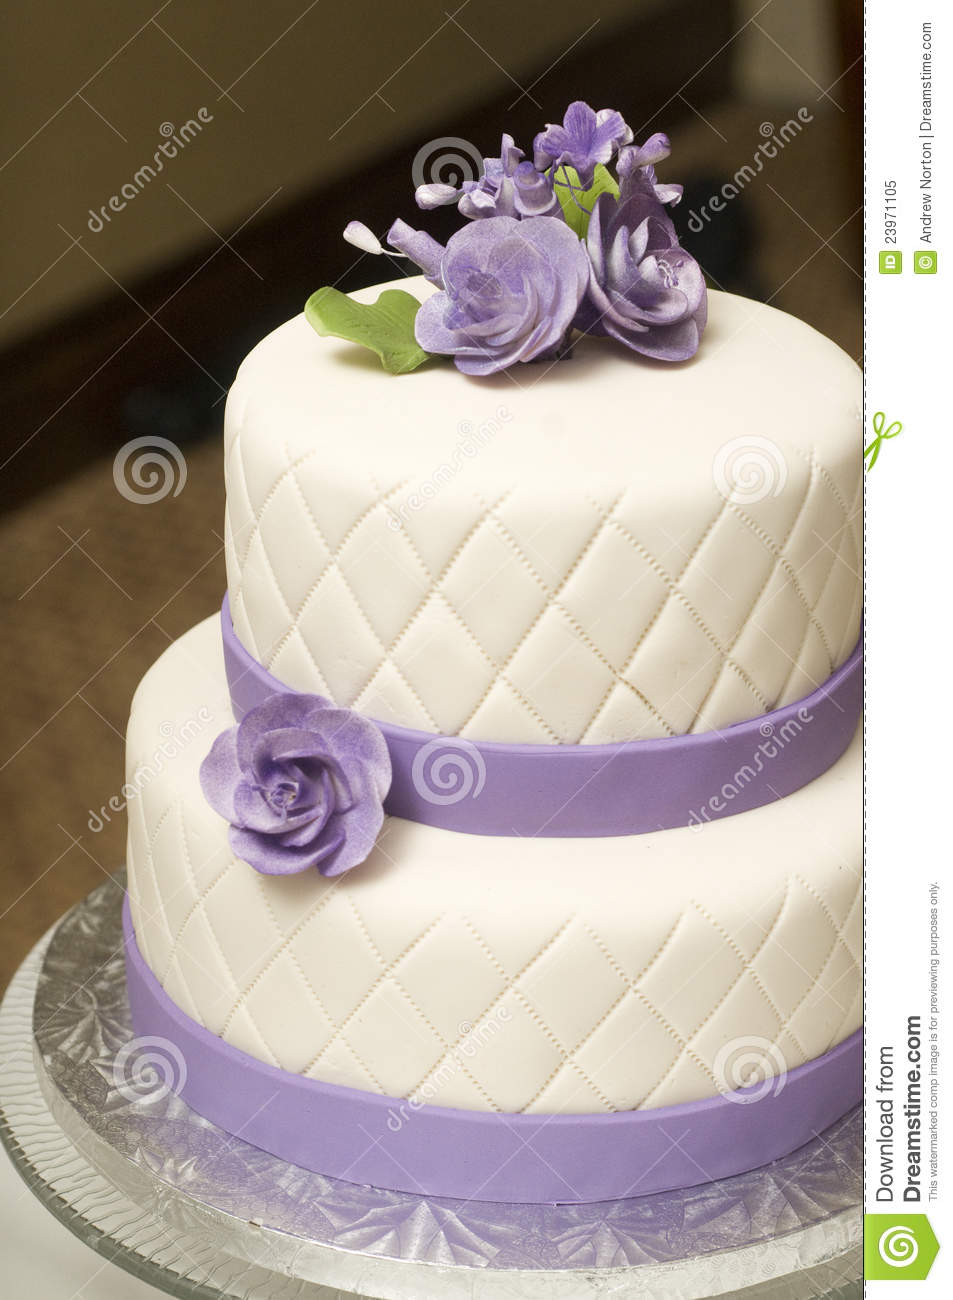 Wedding Cake Royalty Free Stock Photo Image 23971105